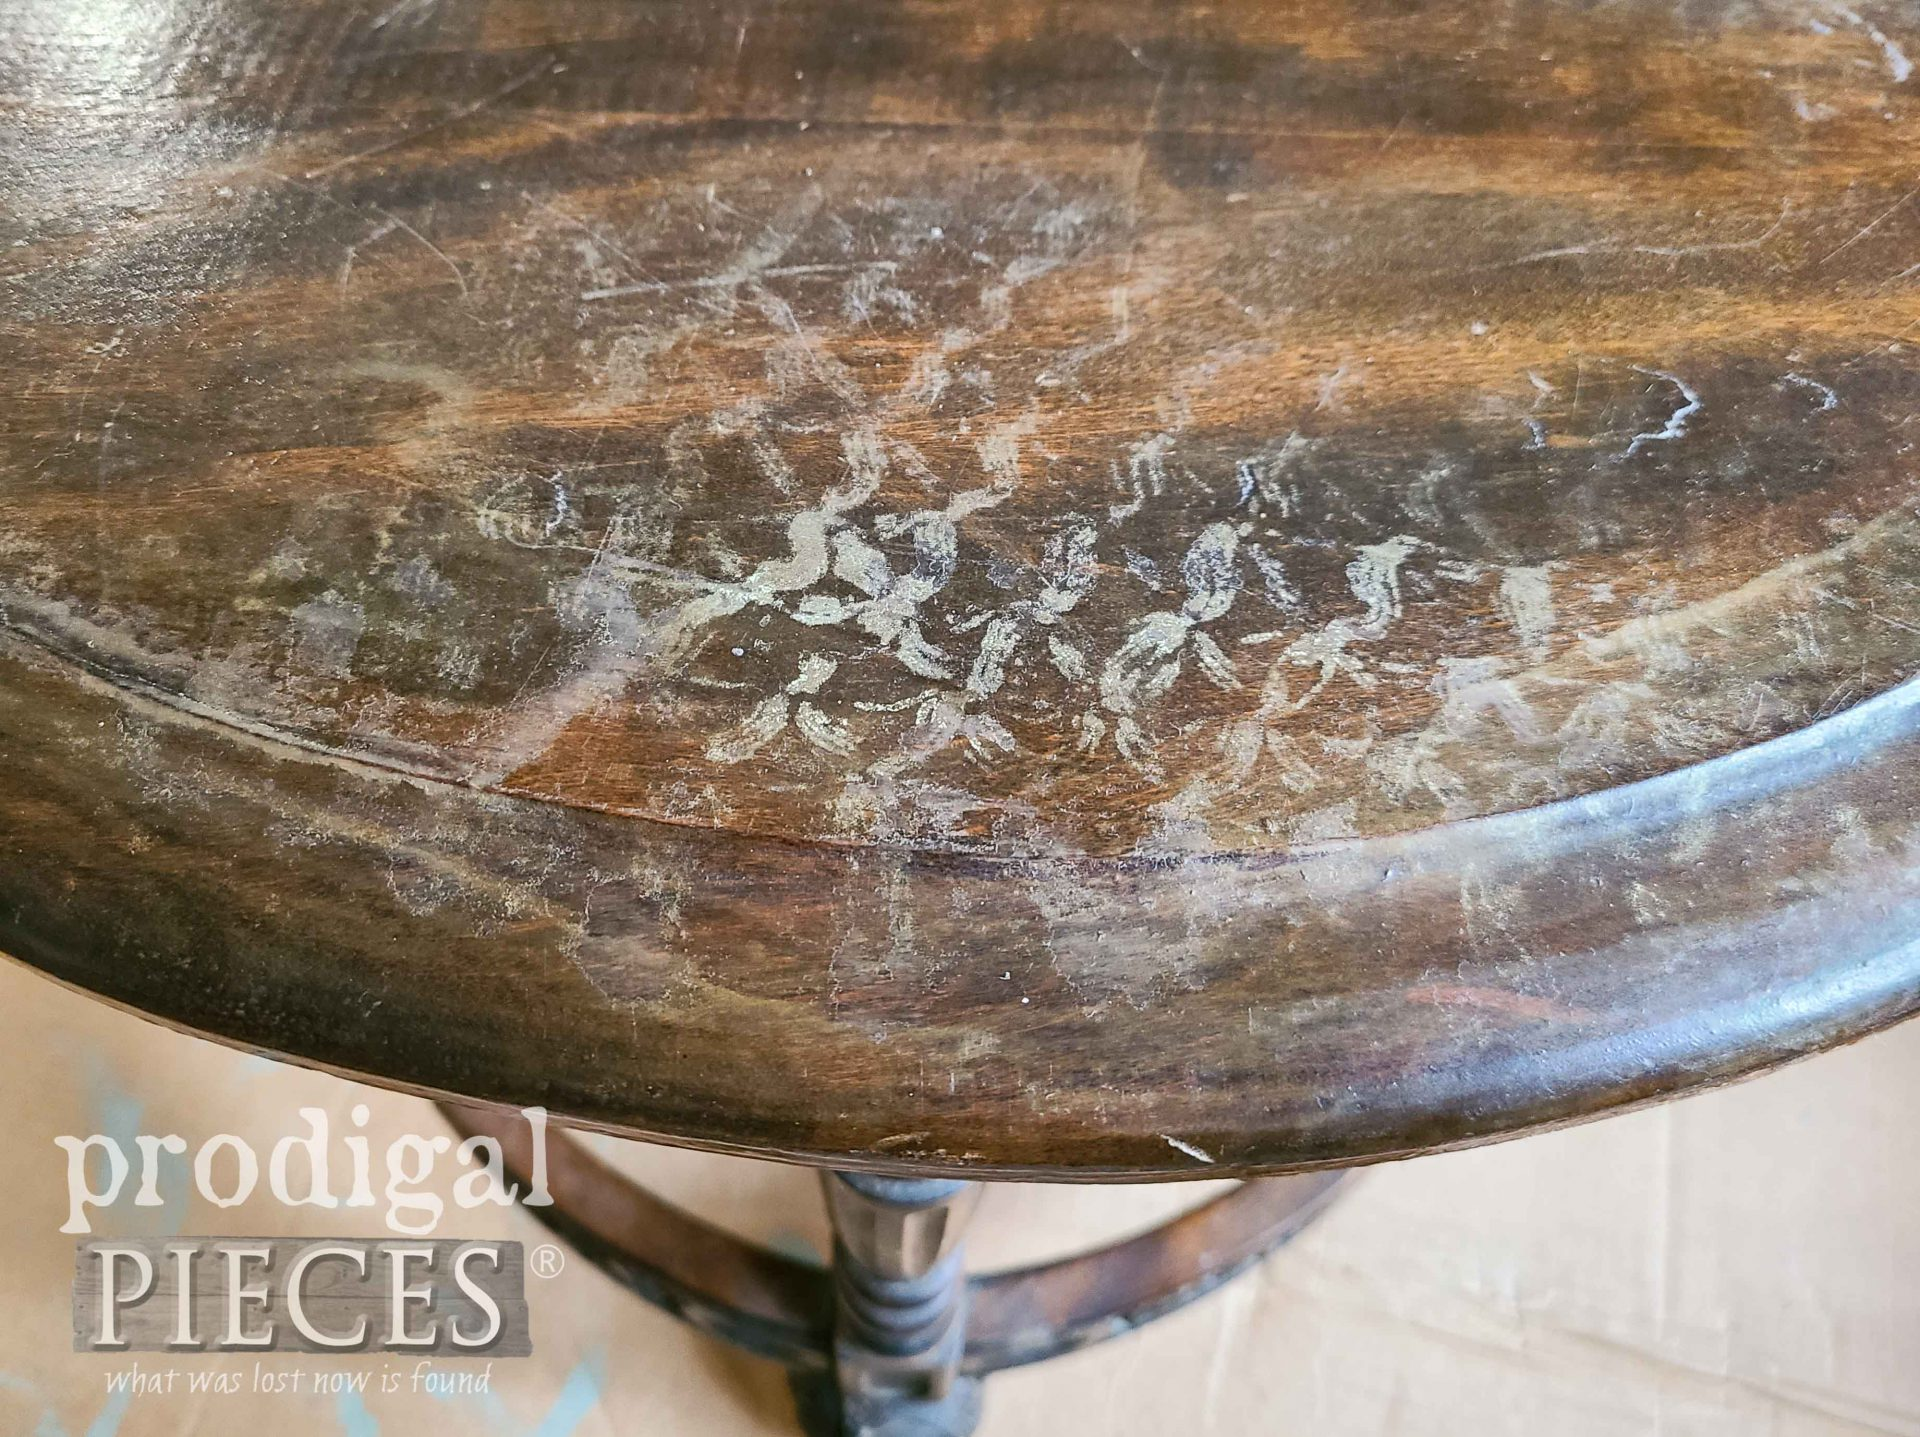 Damaged Antique Half Round Table Top | prodigalpieces.com #prodigalpieces